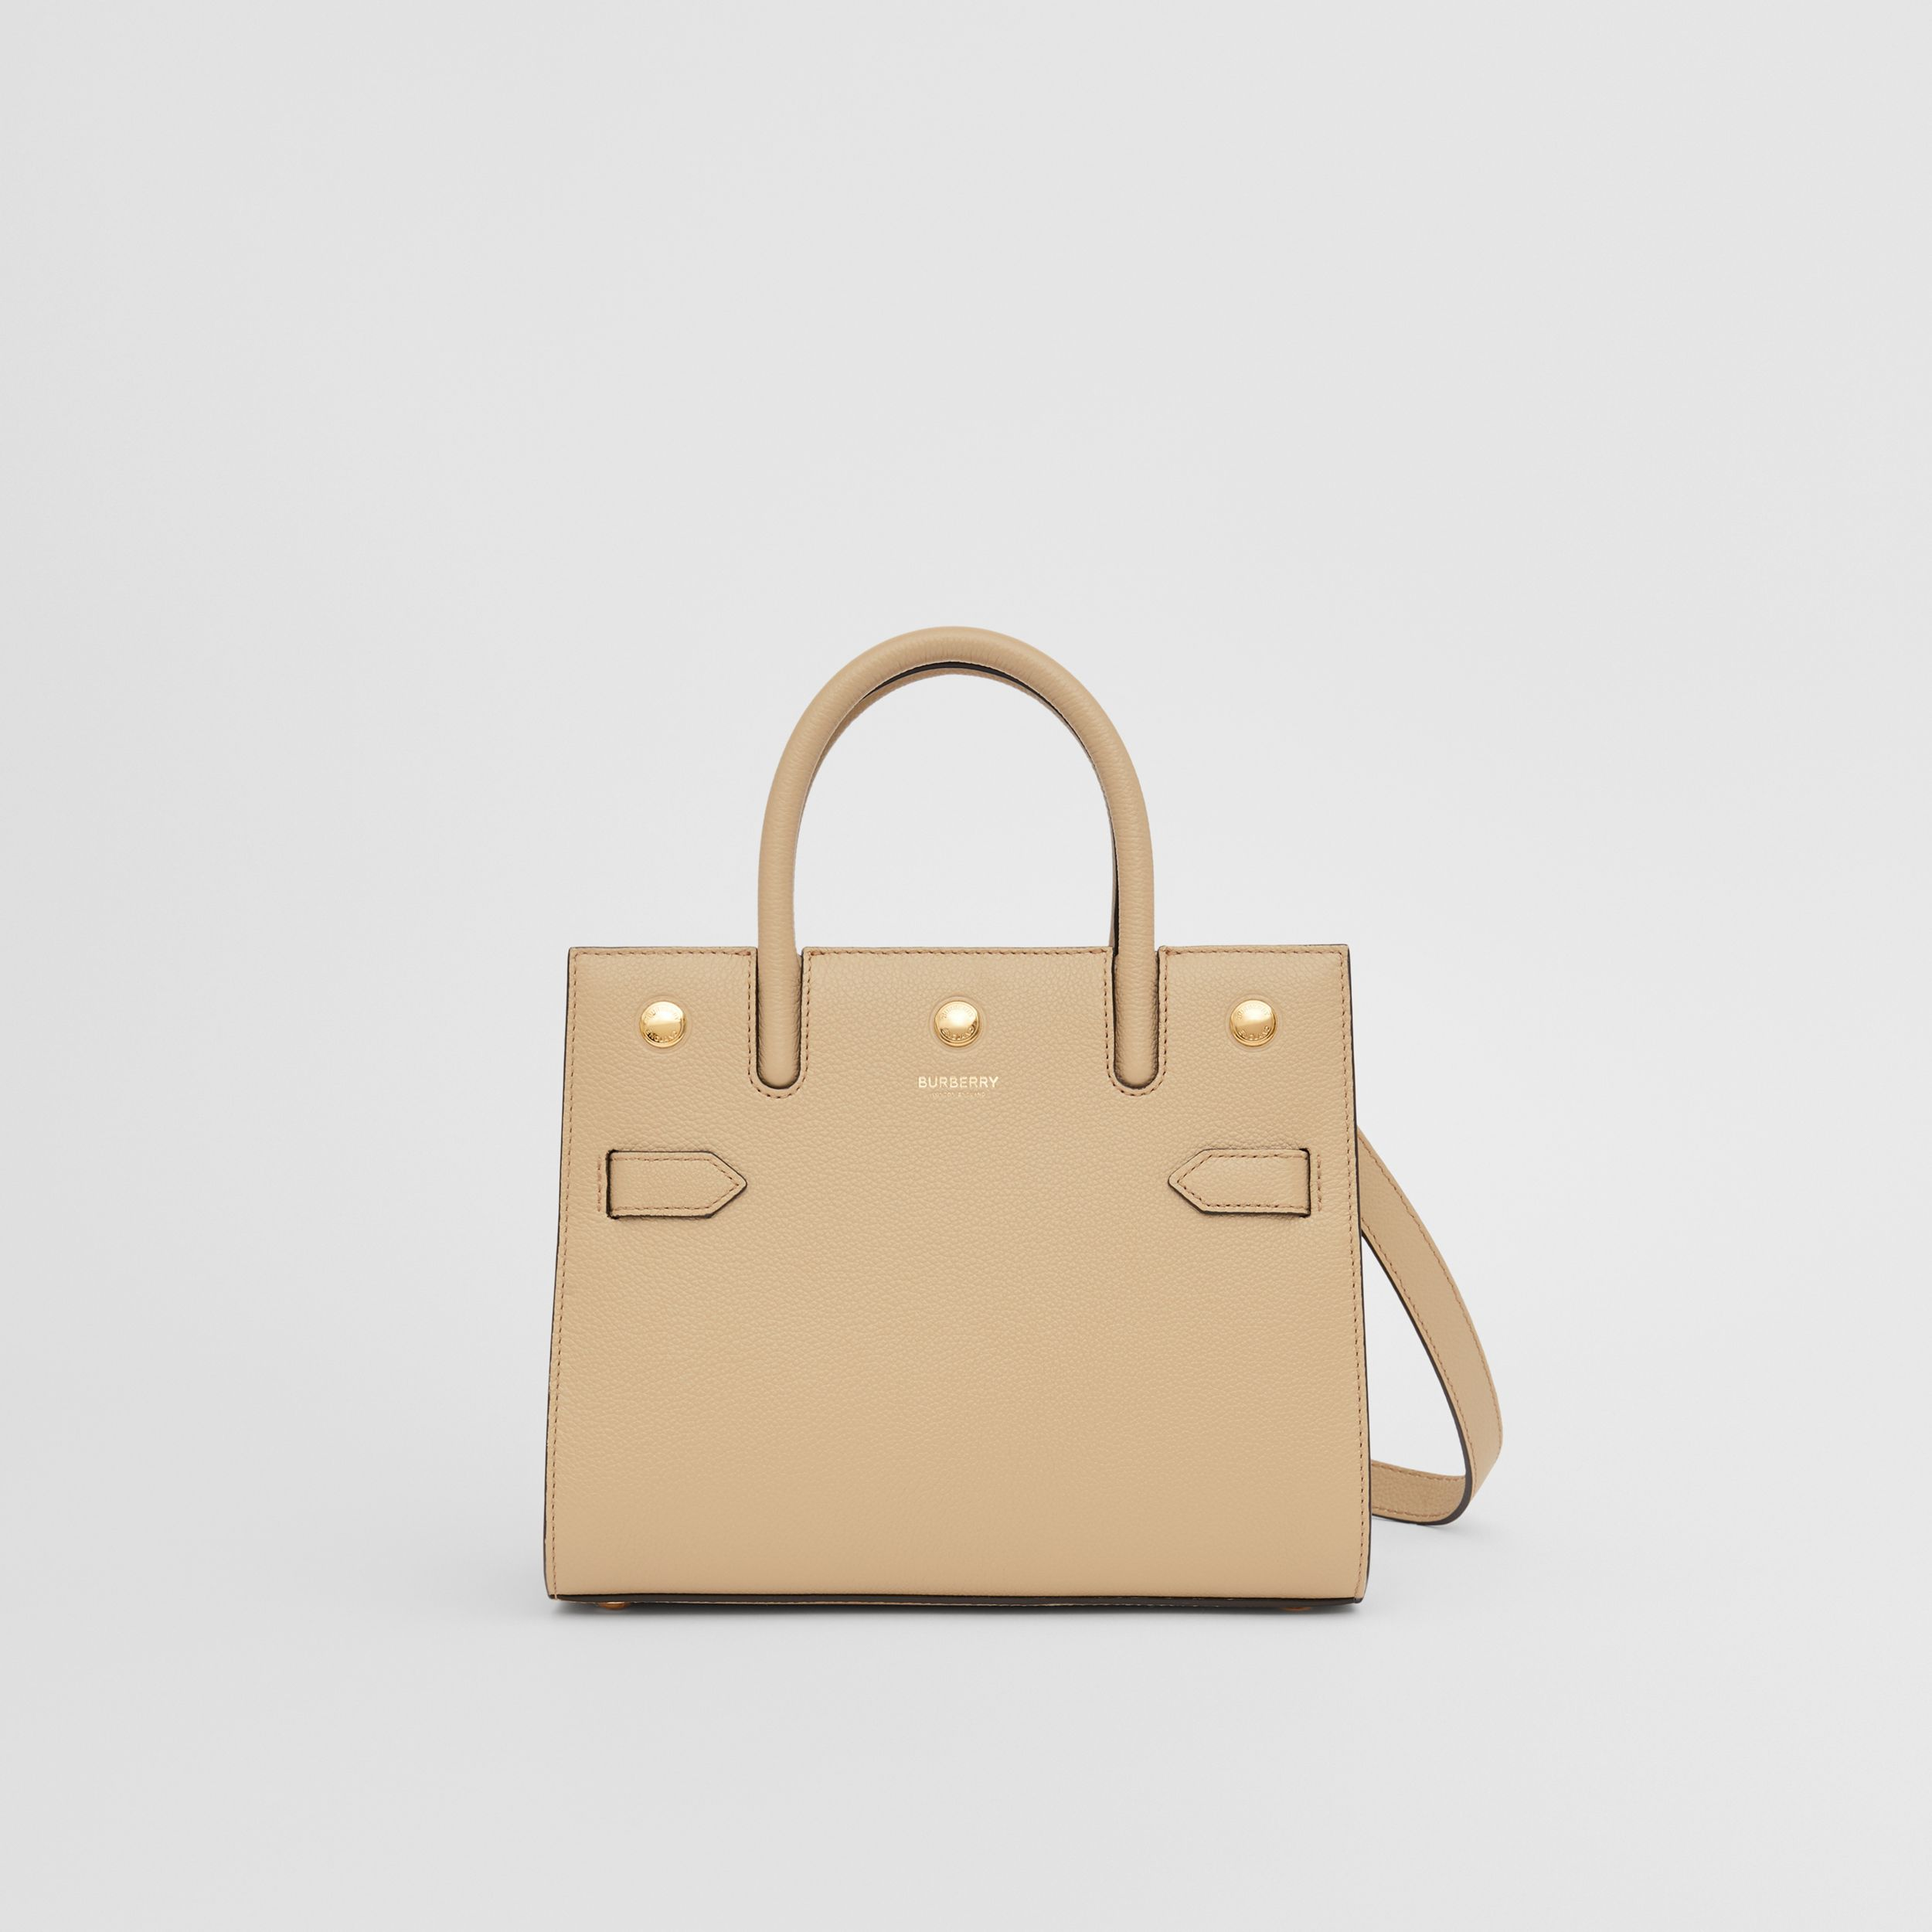 Mini Leather Two-handle Title Bag in Light Beige - Women | Burberry - 1